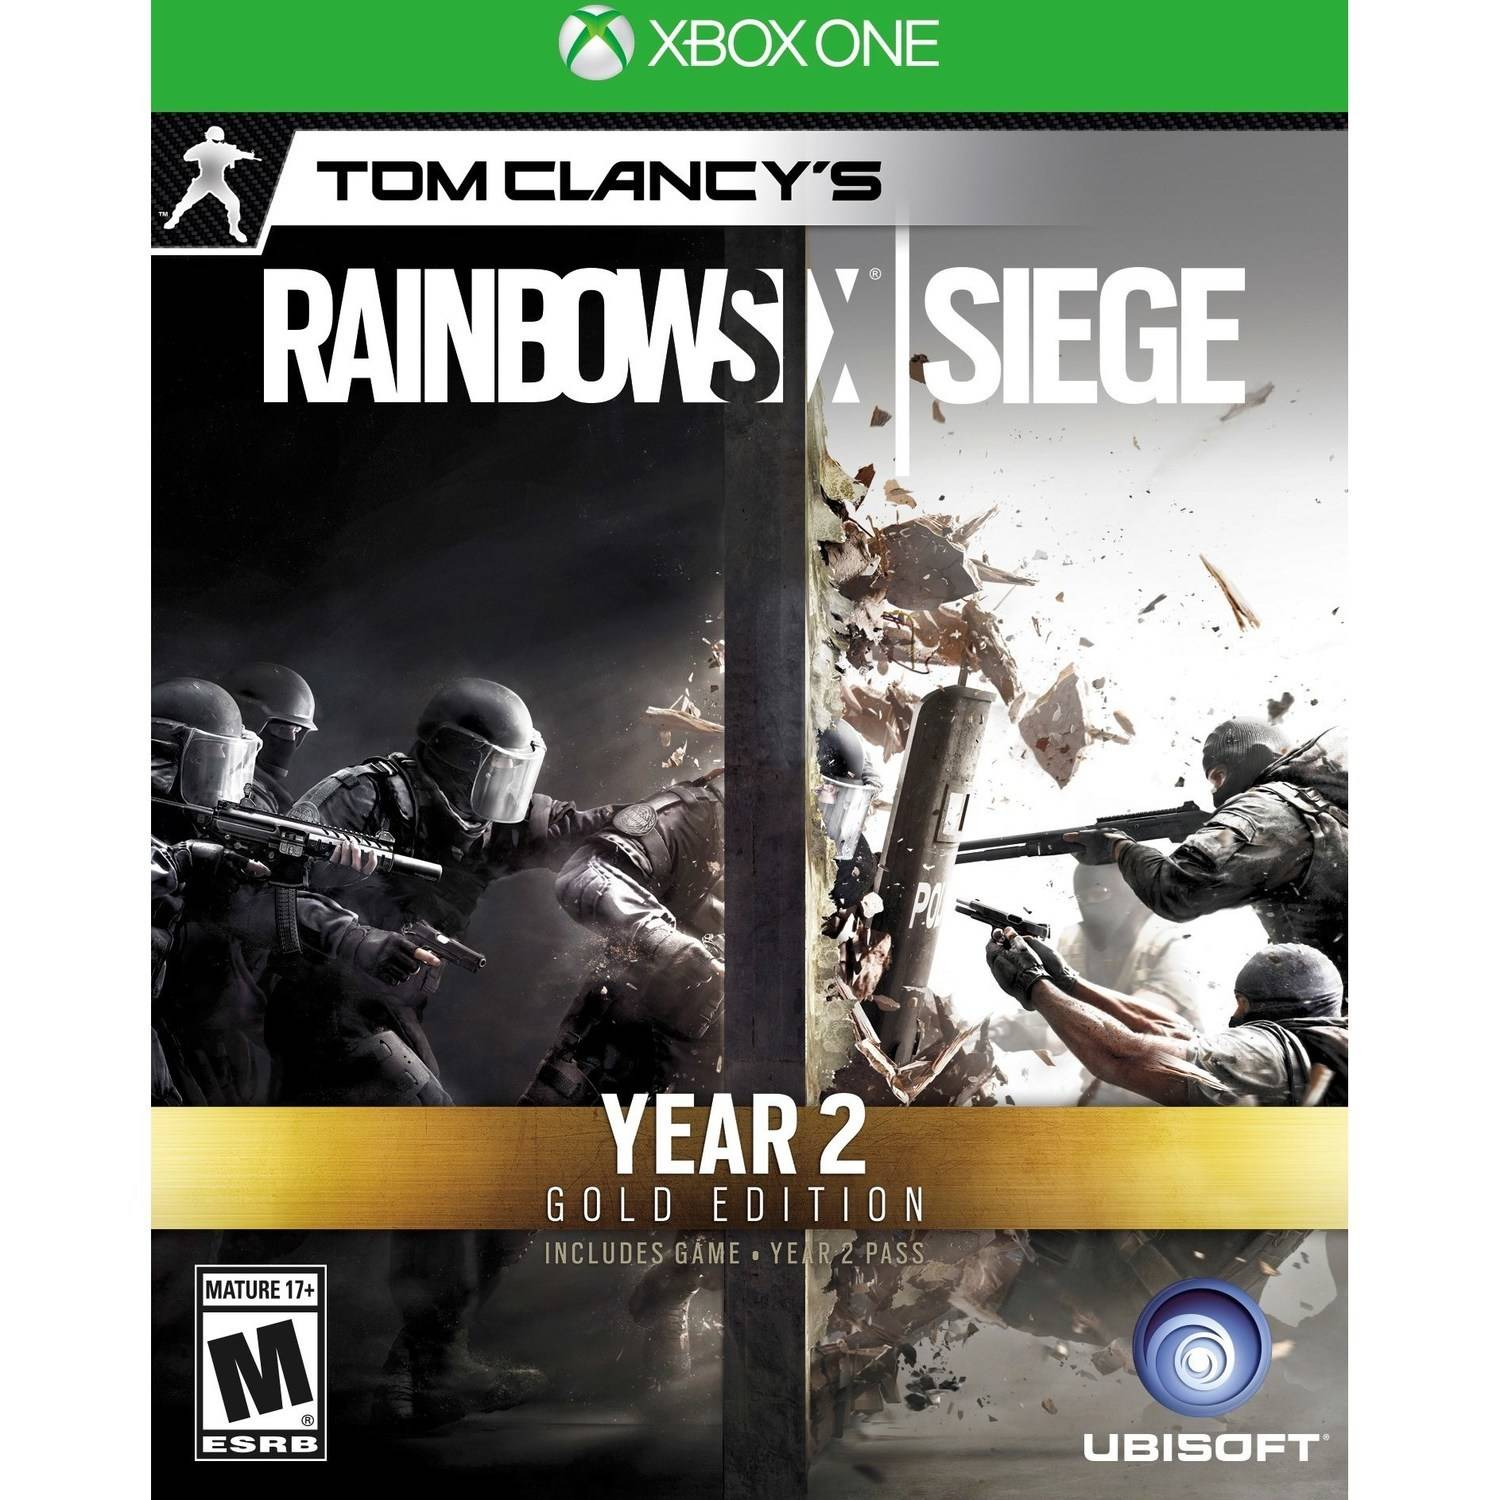 Tom Clancy: Rainbow Six Siege Year 2 Gold Edition (Xbox One) Ubisoft, 887256027452 by Ubisoft